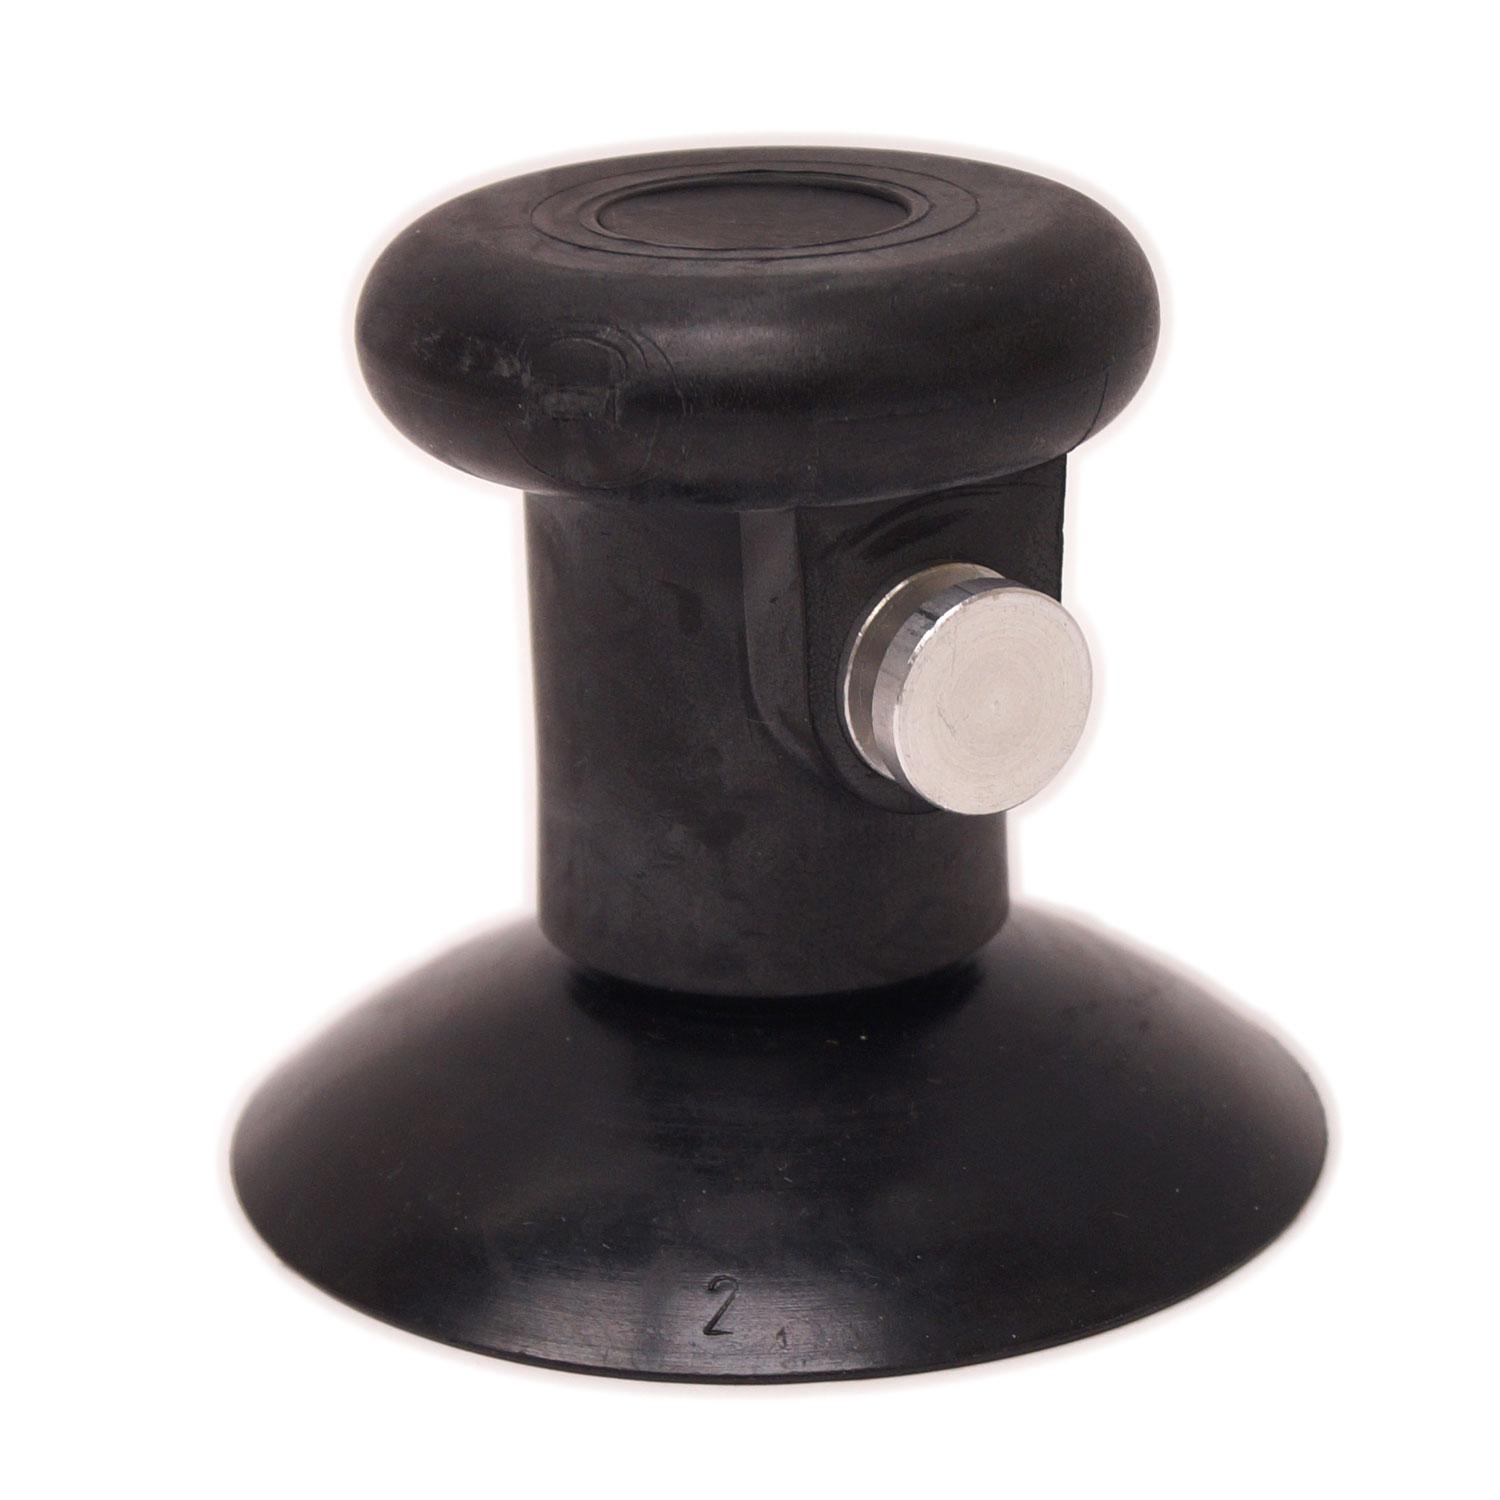 Bulleye Lamp Push Button Vacuum Cup | Safety Supplies Delphi Glass